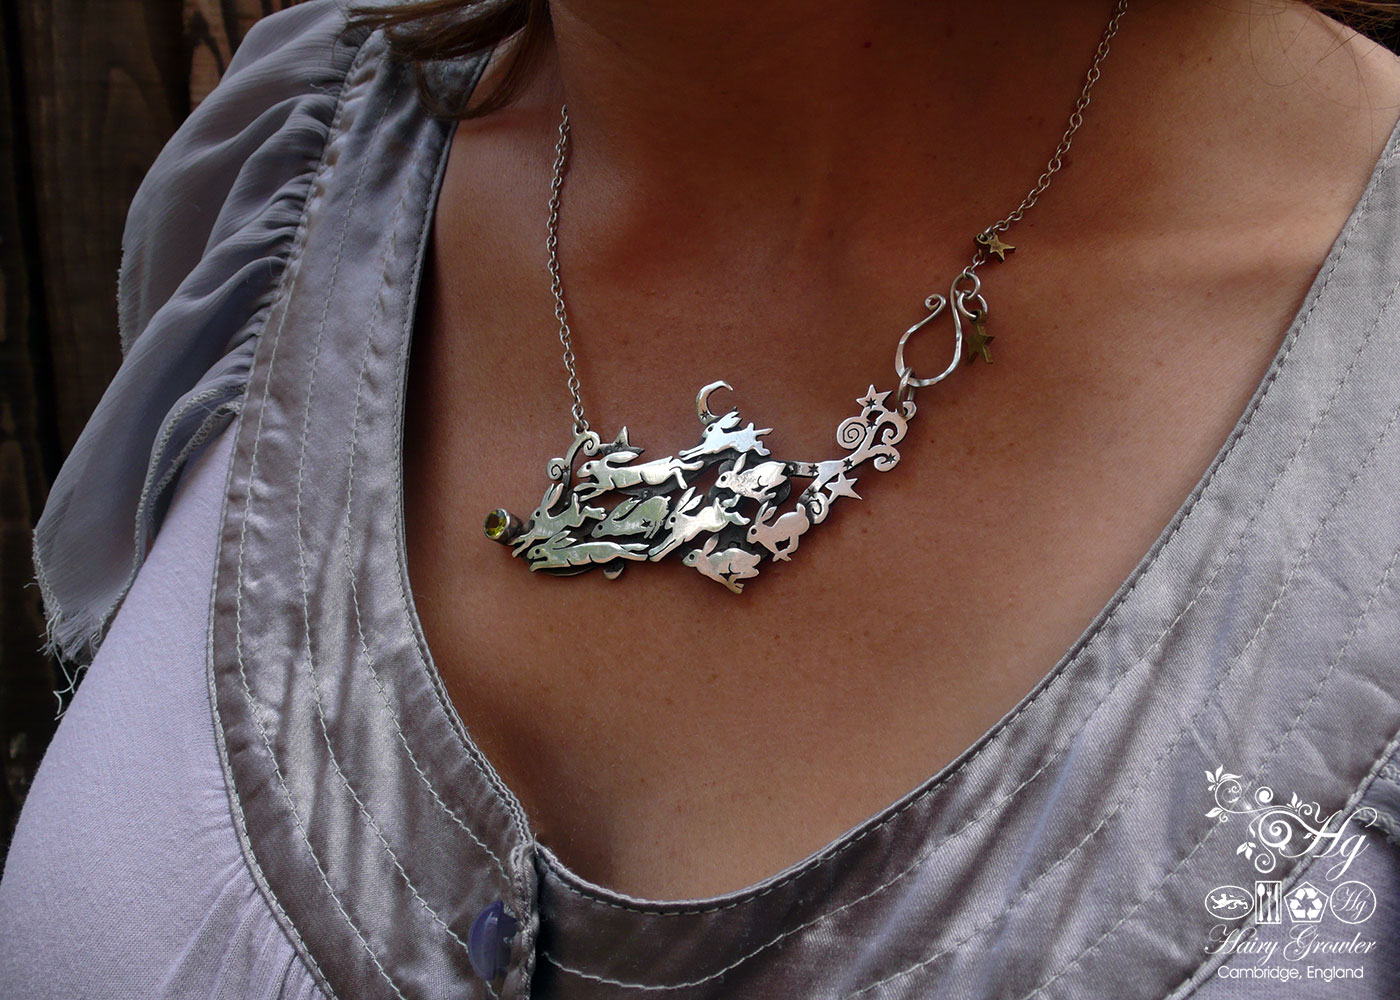 bespoke, original and unique rabbit and hare silver jewellery handmade and recycled